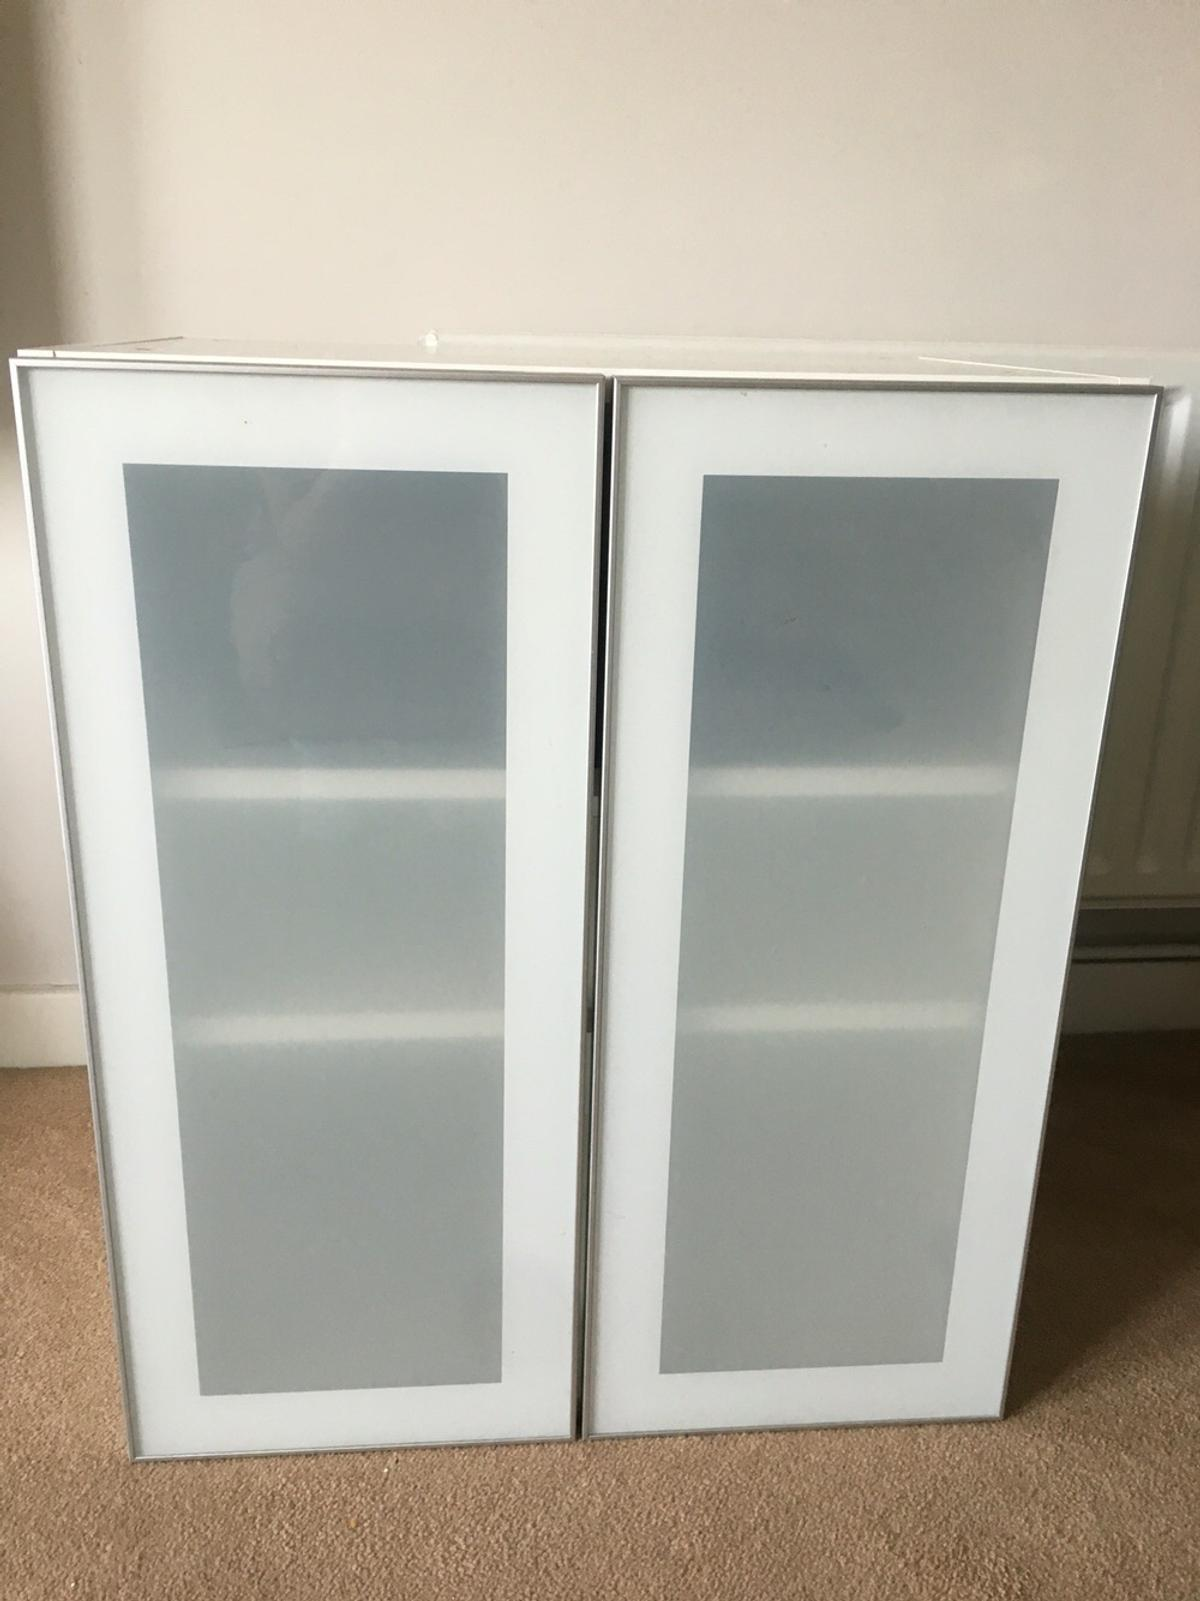 Ikea Kitchen Wall Cabinet With Glass Doors In E3 London For 9 00 For Sale Shpock